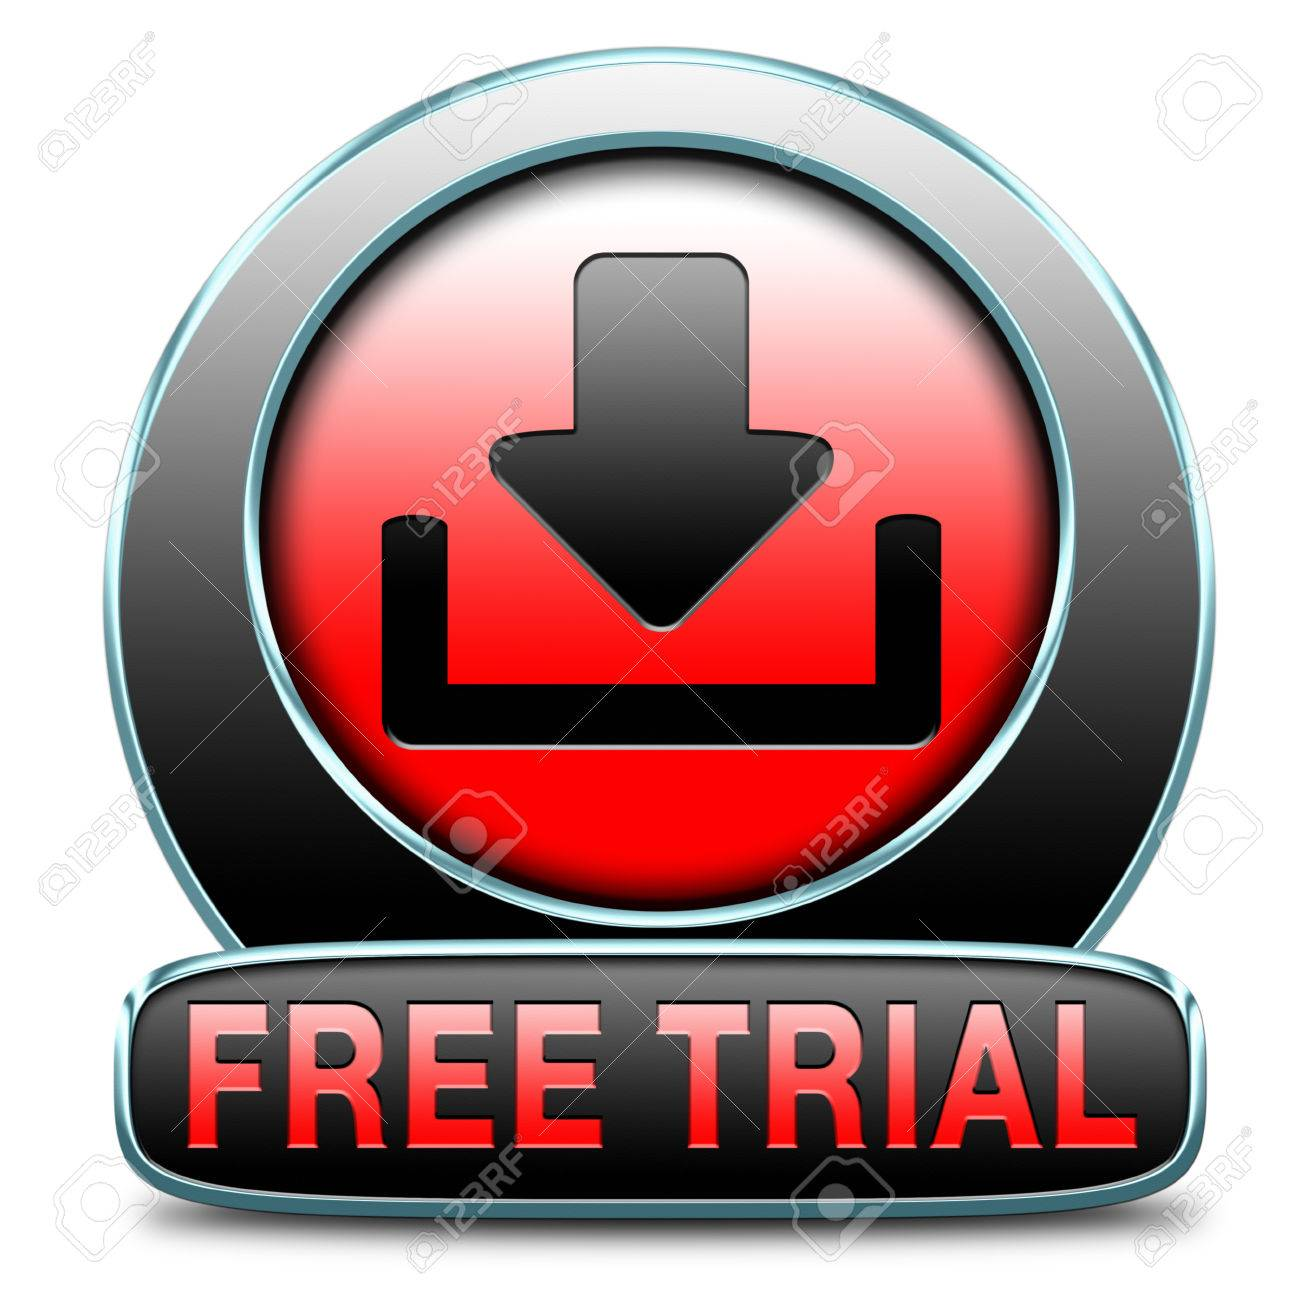 Gratis Proefmonster Free Trial Download Test Sample Free Of Charge Try New Product